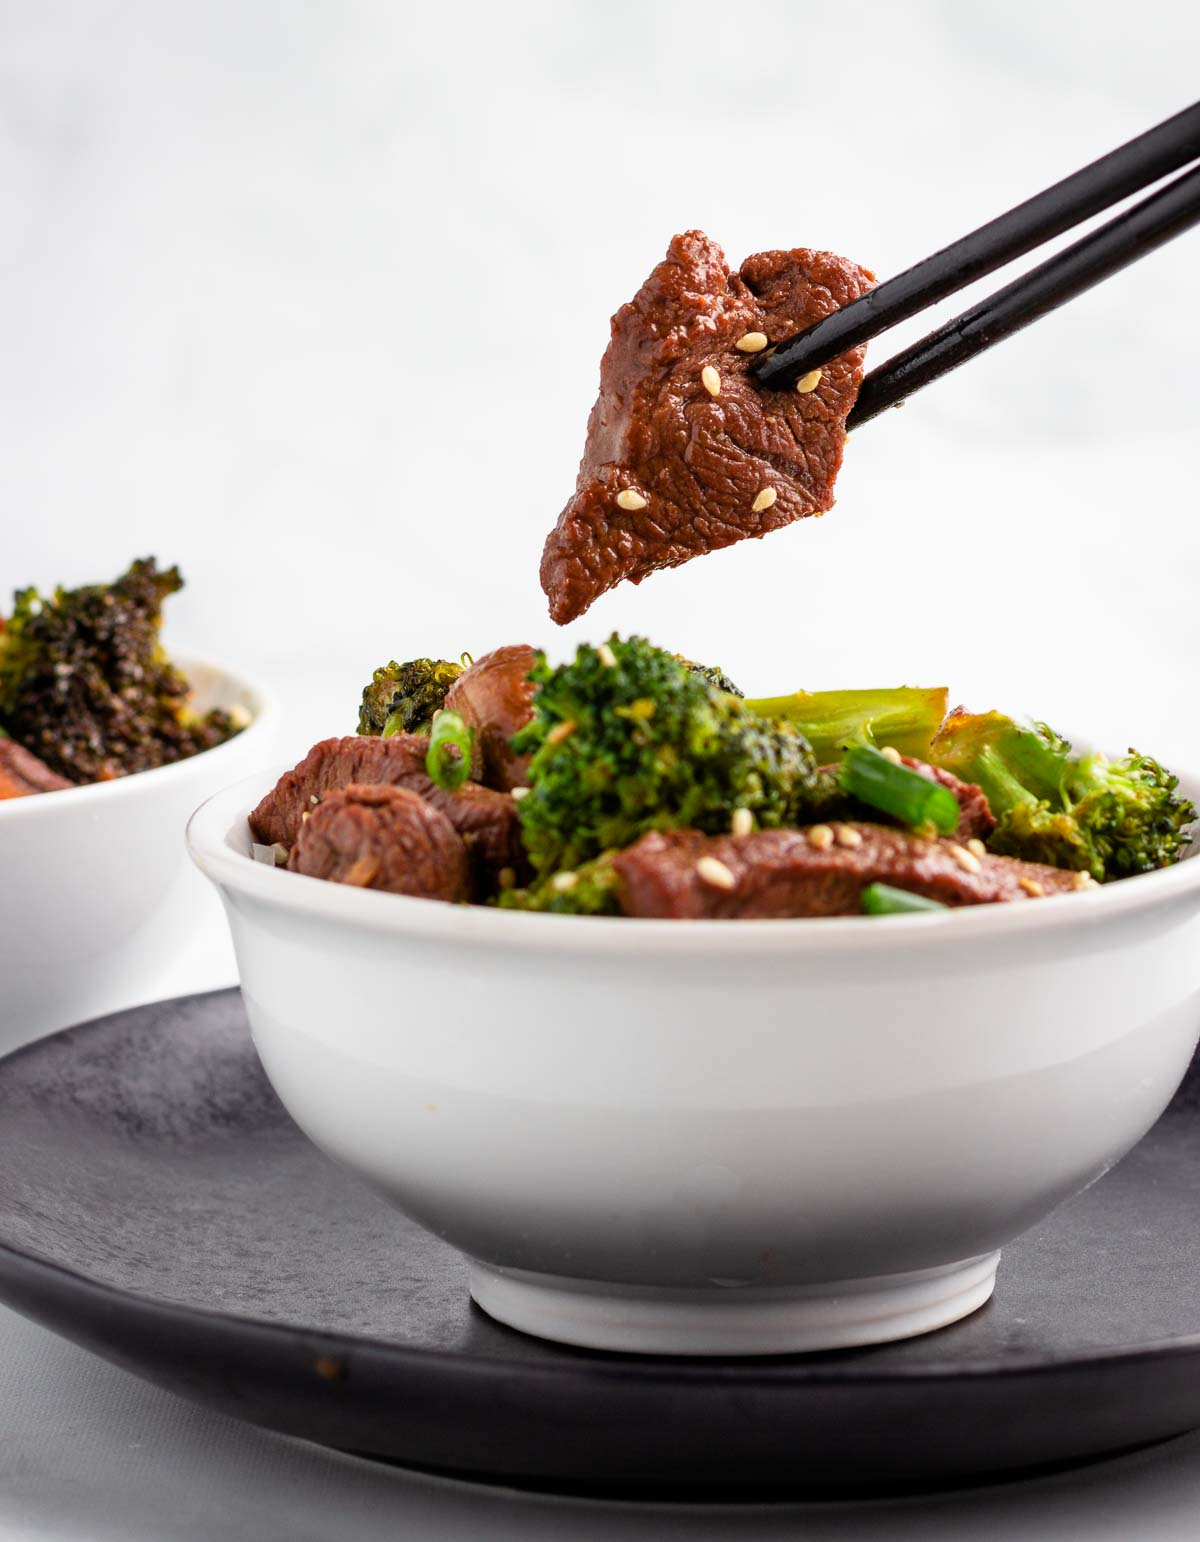 Keto Broccoli Mushroom Beef in a Bowl.